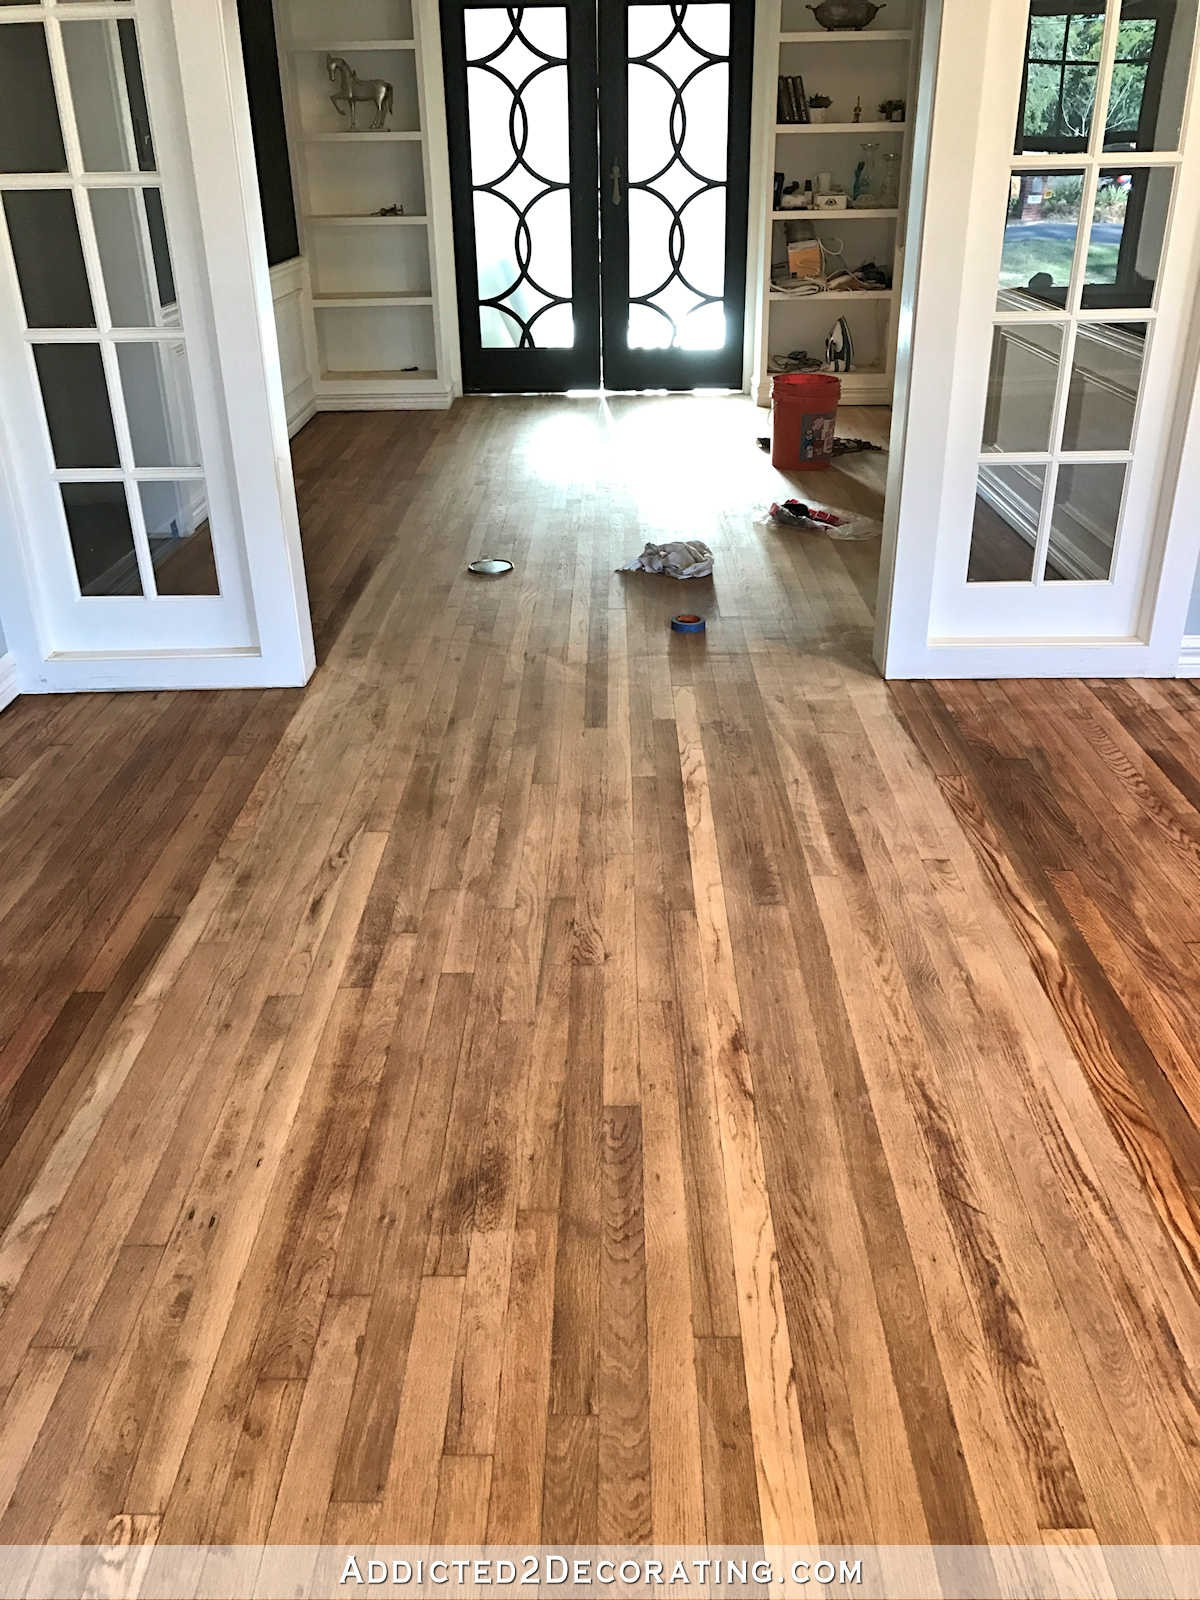 Hardwood Floor Cleaning Cost Of 19 Unique How Much Does It Cost to Refinish Hardwood Floors Gallery within How Much Does It Cost to Refinish Hardwood Floors Unique Adventures In Staining My Red Oak